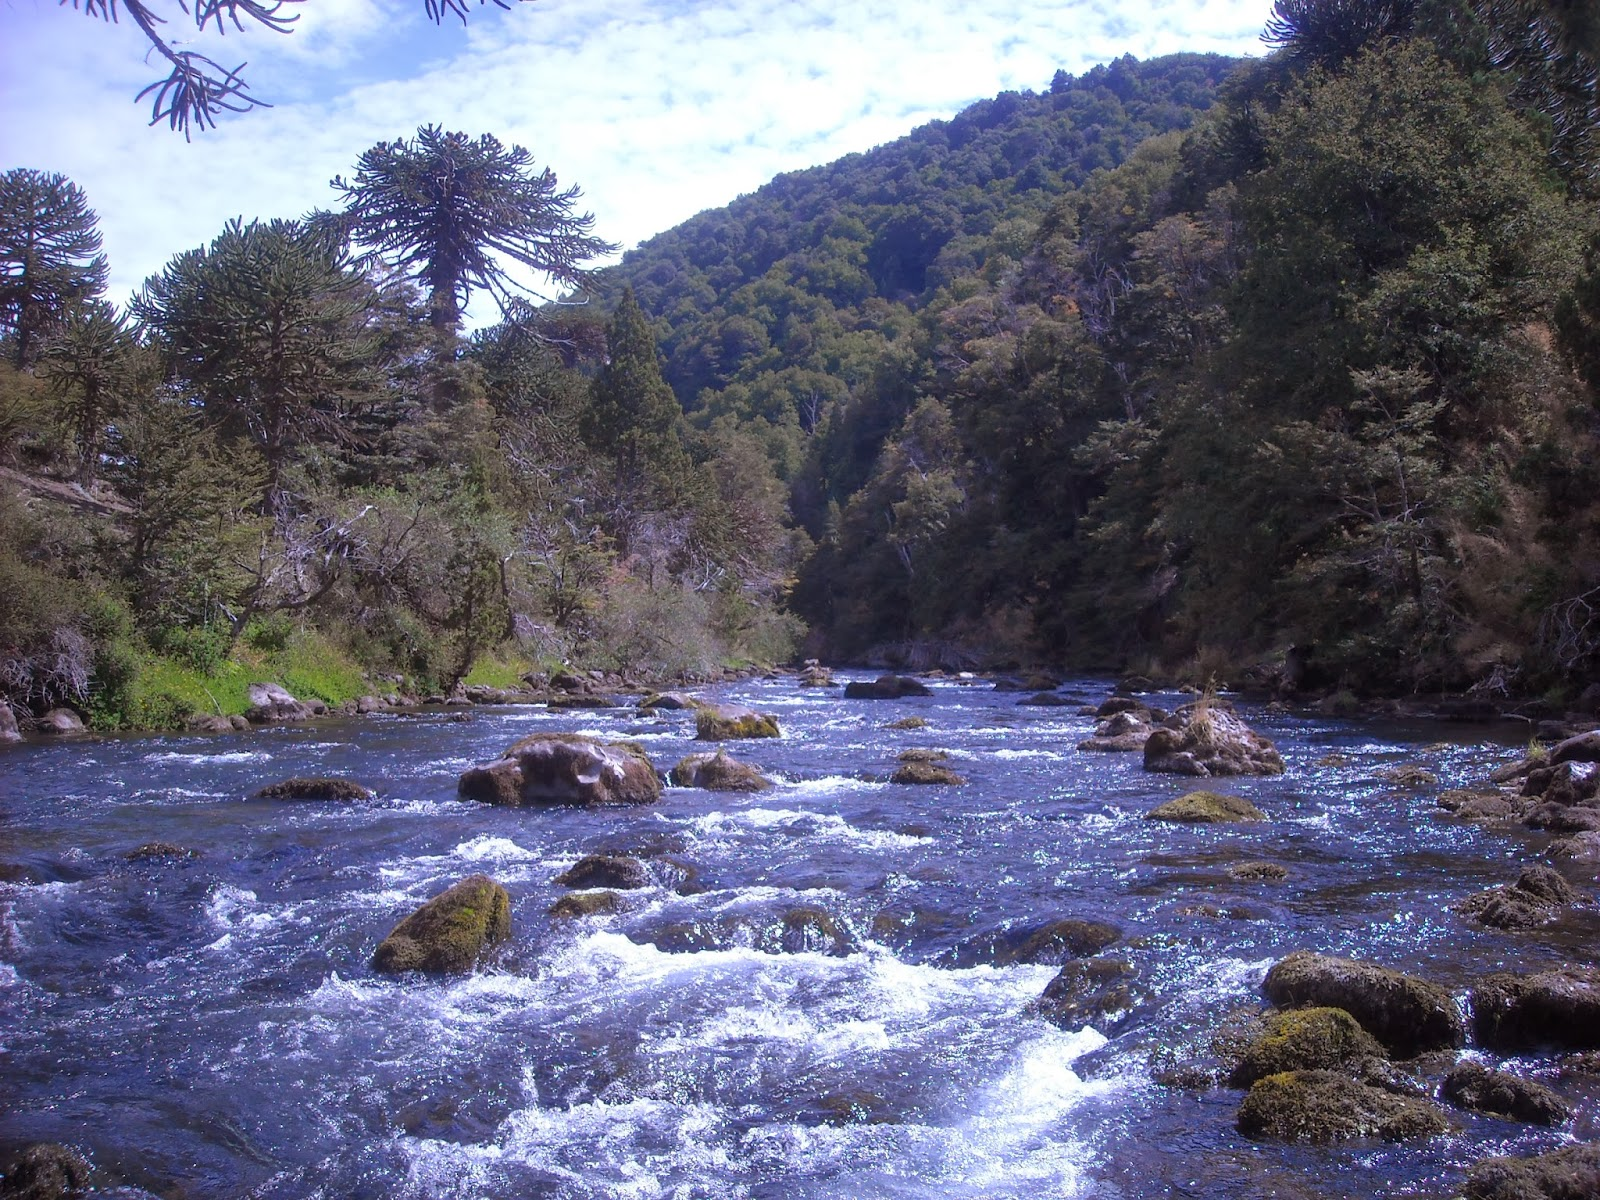 First cast fly fishing fly fishing patagonia argentina for Fly fishing patagonia